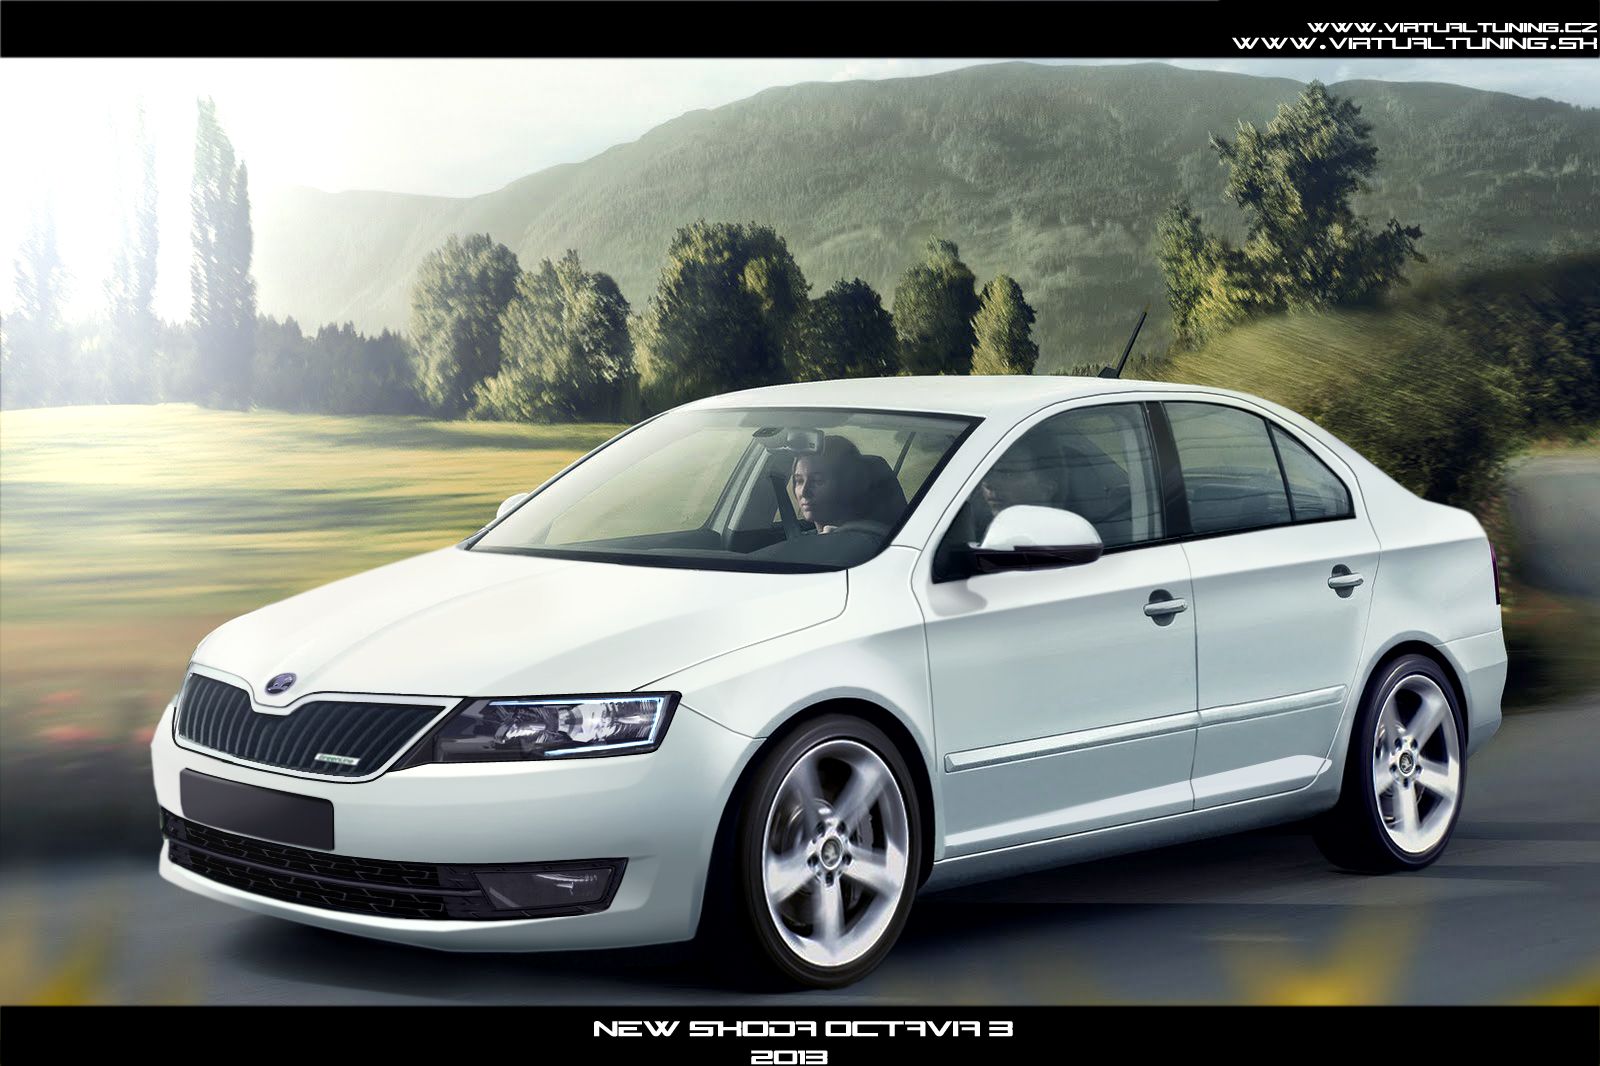 pheonix m6 2013 skoda octavia. Black Bedroom Furniture Sets. Home Design Ideas